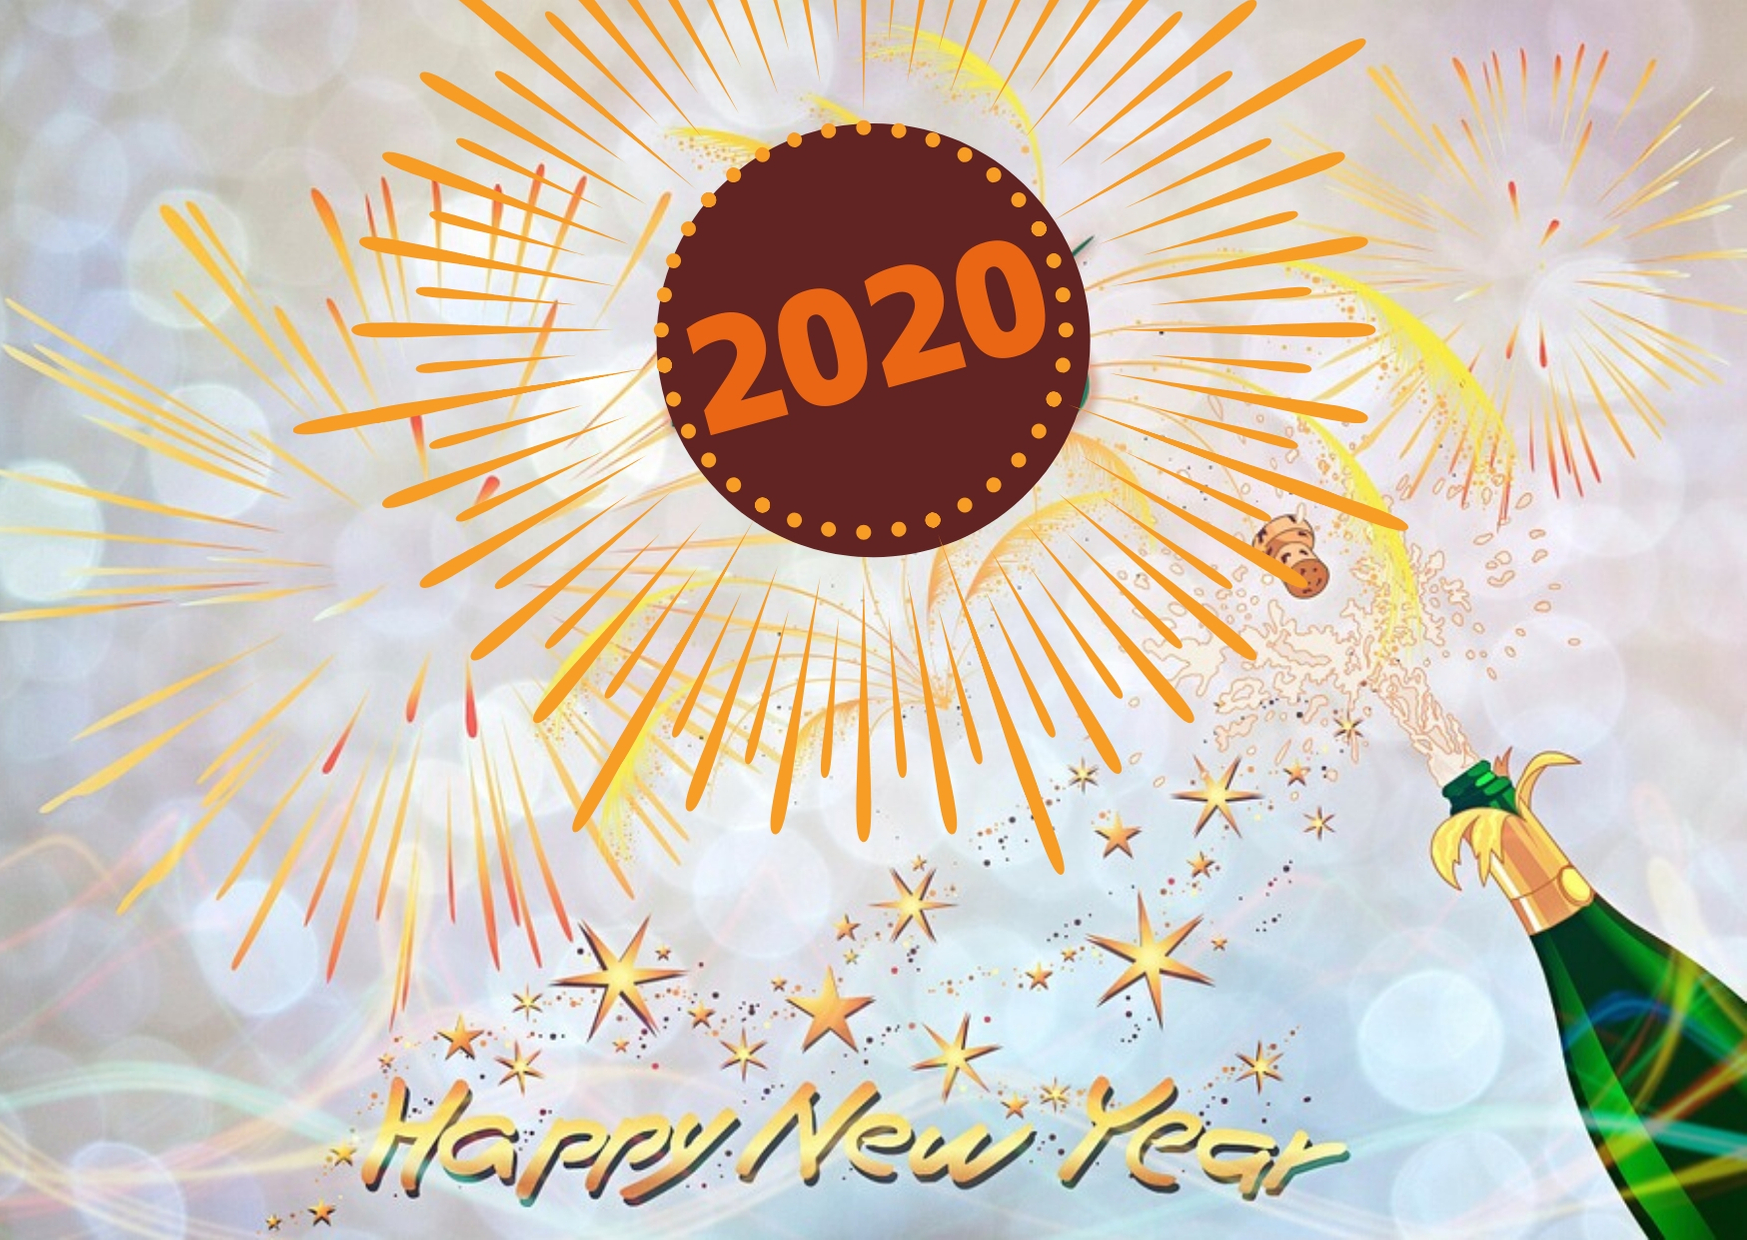 happy new year romantic images 2020, happy new year 2020 romantic images hd